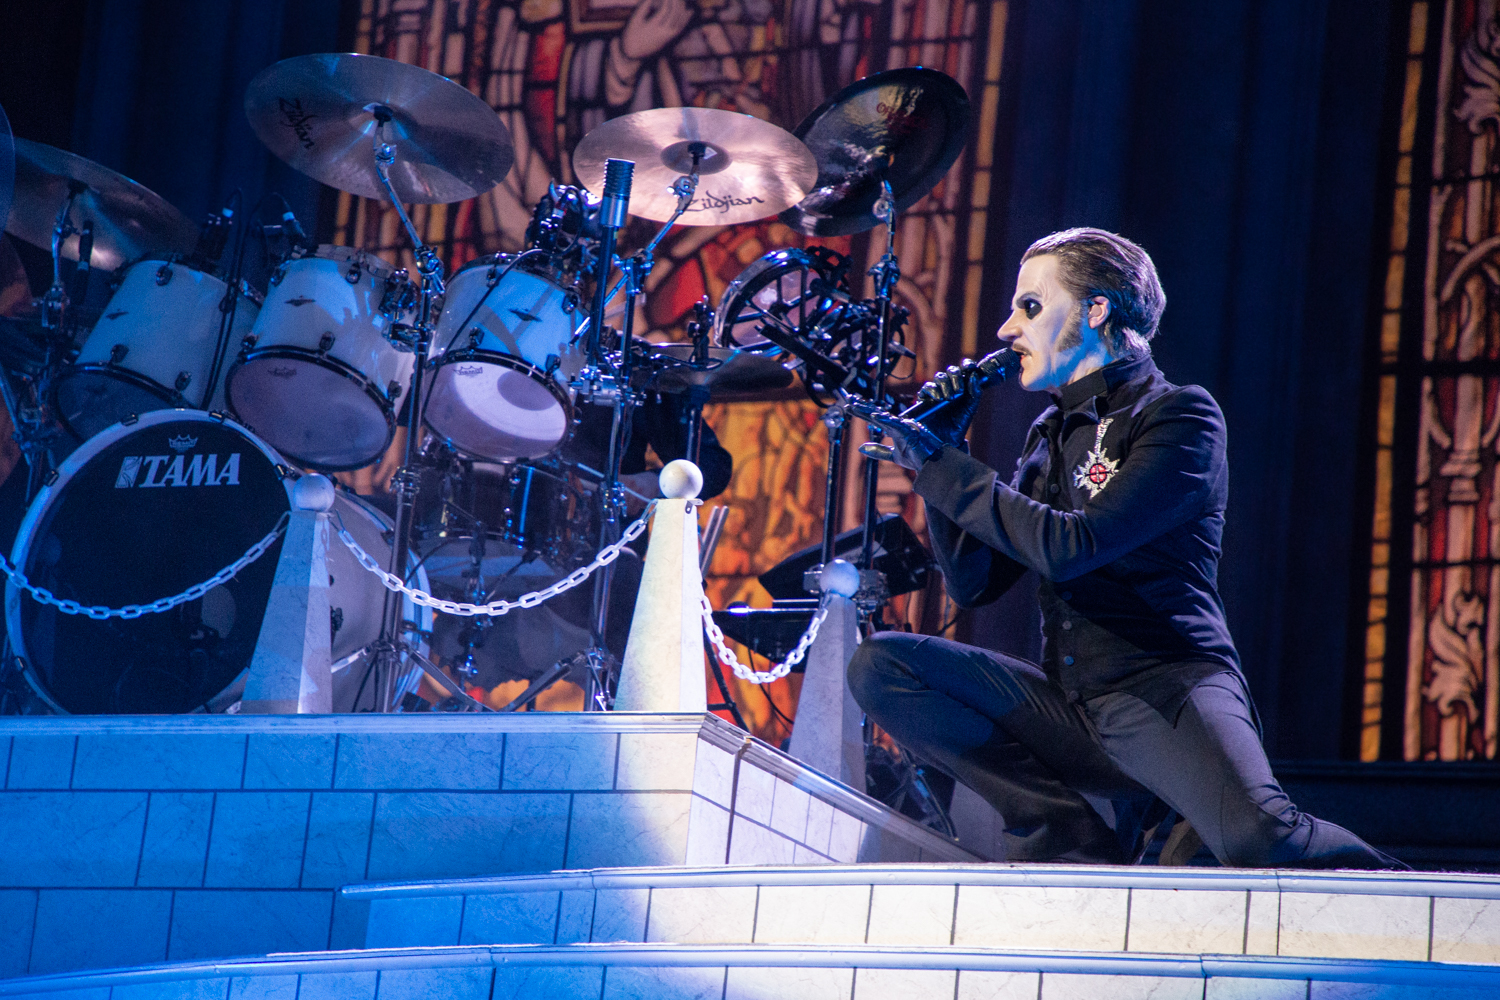 Ghost Barclays Center 2018 15 Live Review: Ghost Turn Brooklyns Barclays Center Into a House of Worship (12/15)